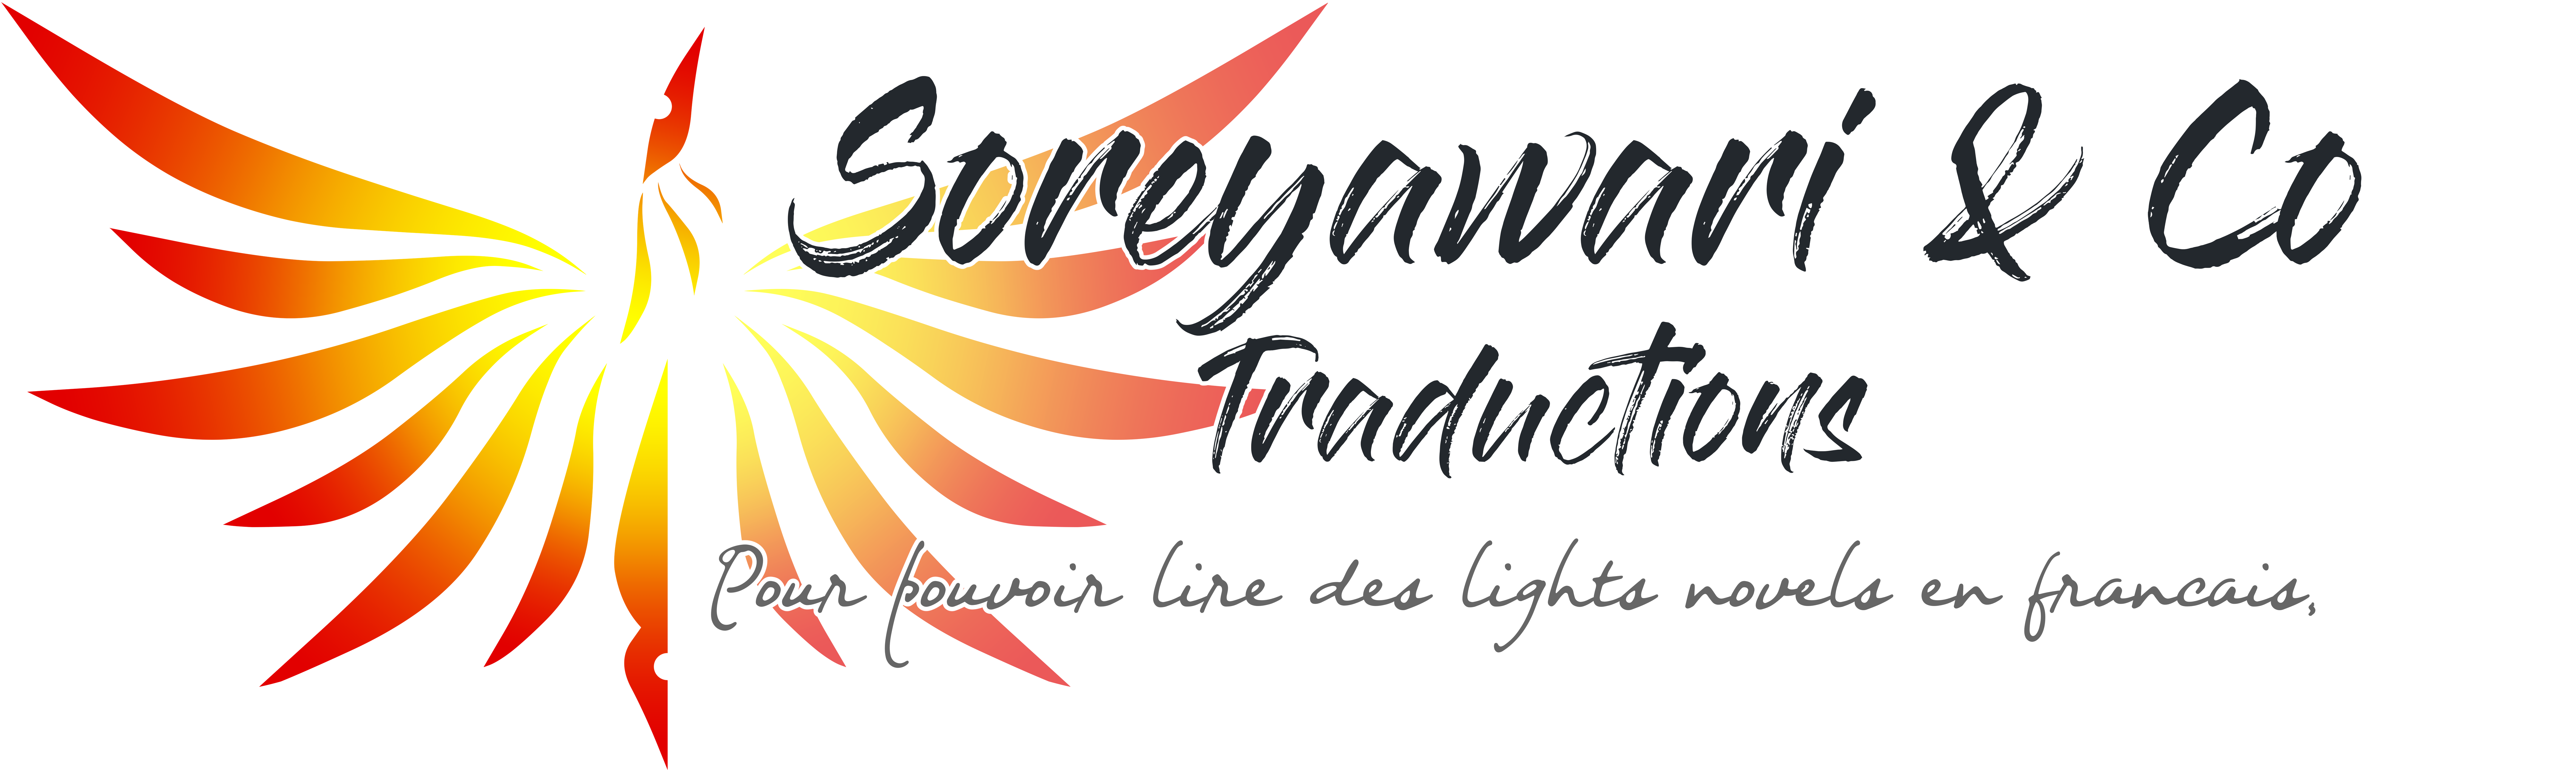 Soreyawari & Co Traductions